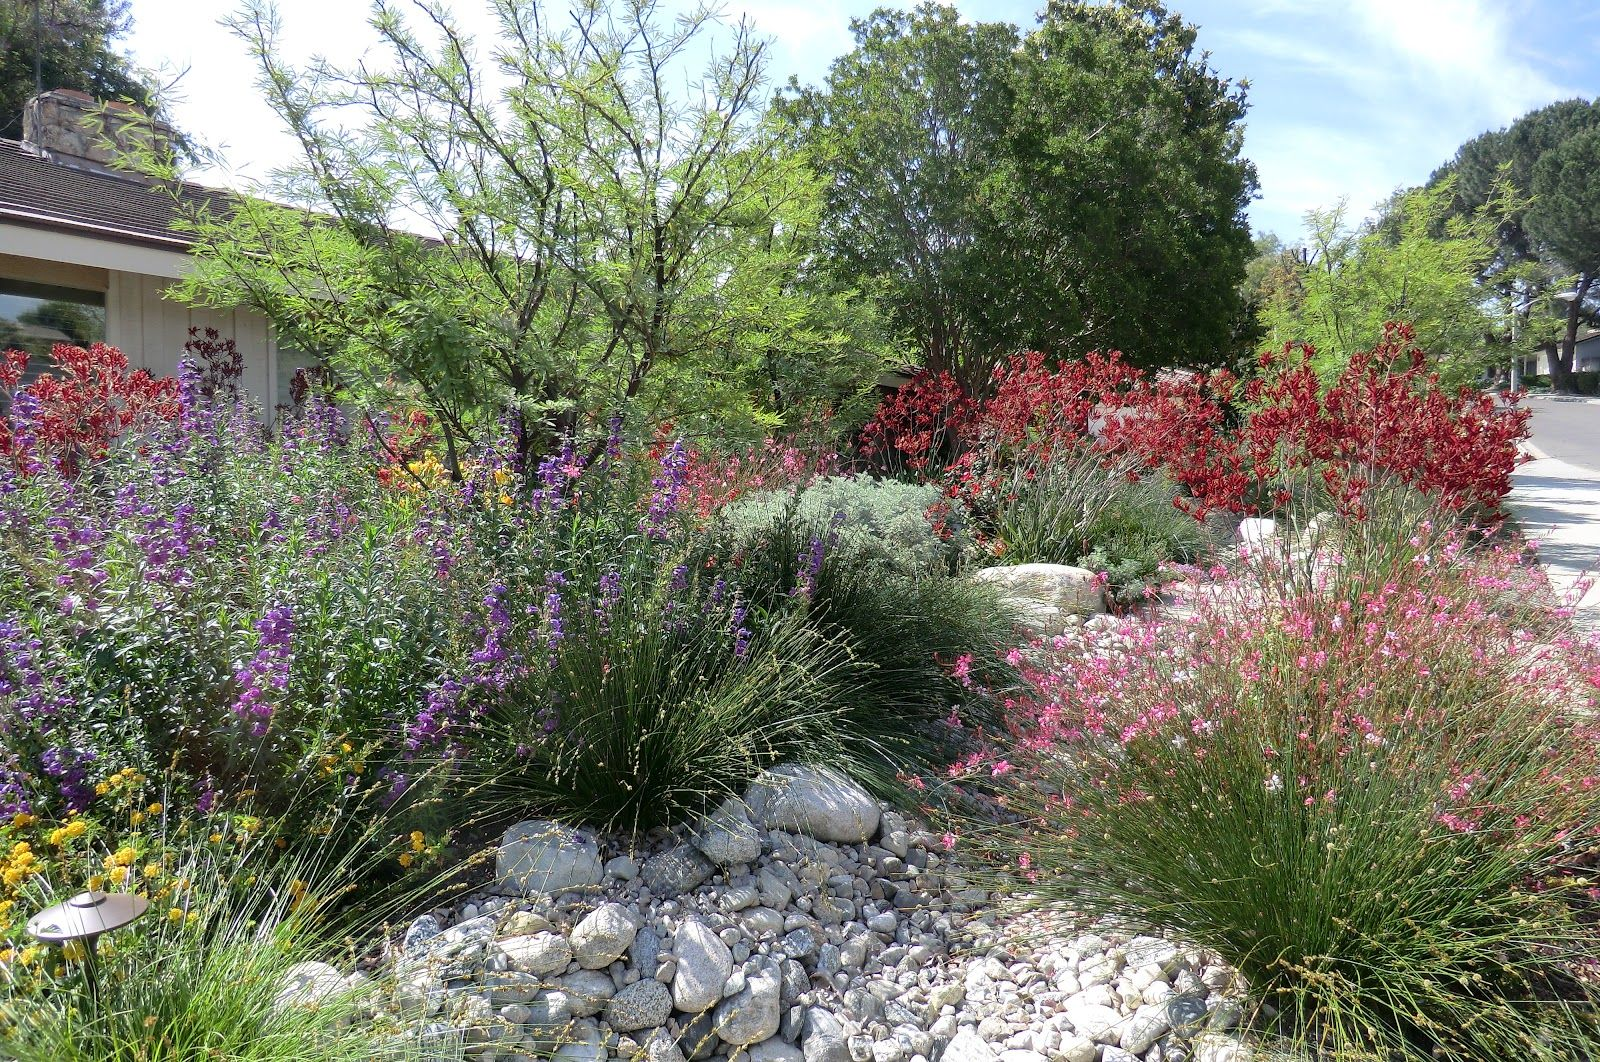 Waterwise Garden Design california native plant gardening and landscaping have tremendous